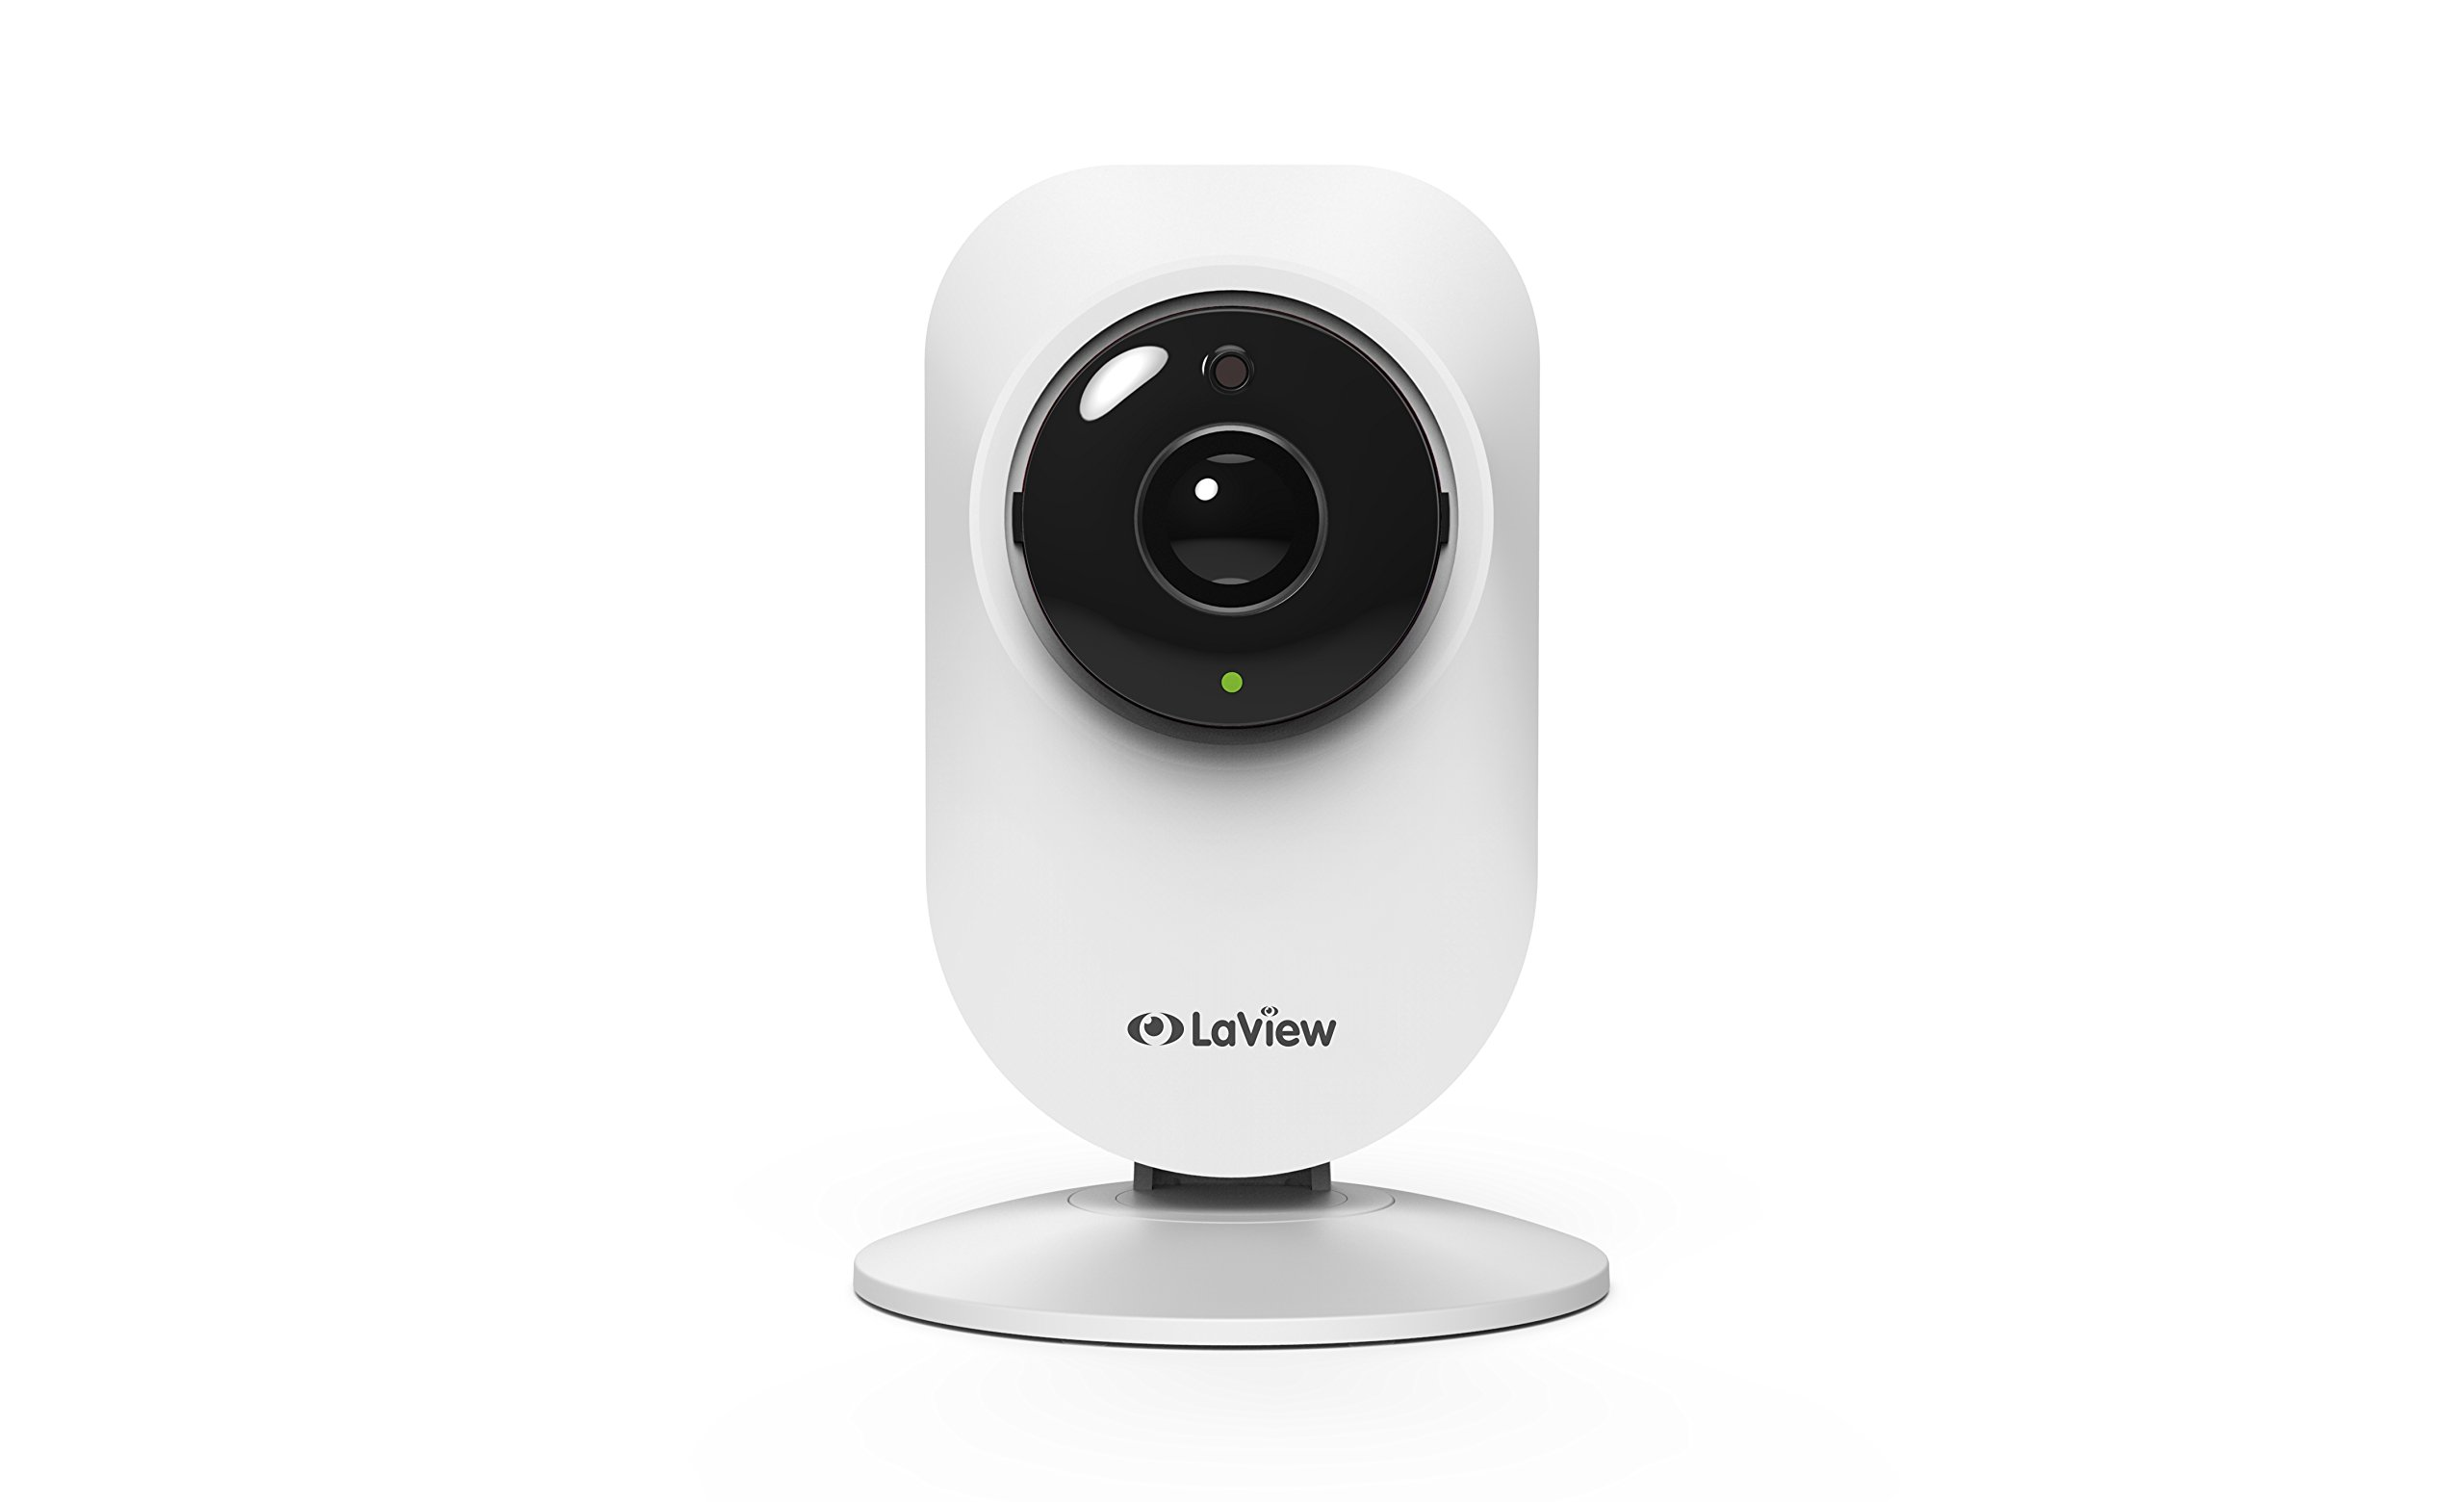 LaView 1080P HD IP Wi-Fi Wireless Security Surveillance Camera, 185° Fish-Eye Lens, Indoor, Portable, Built -in Microphone